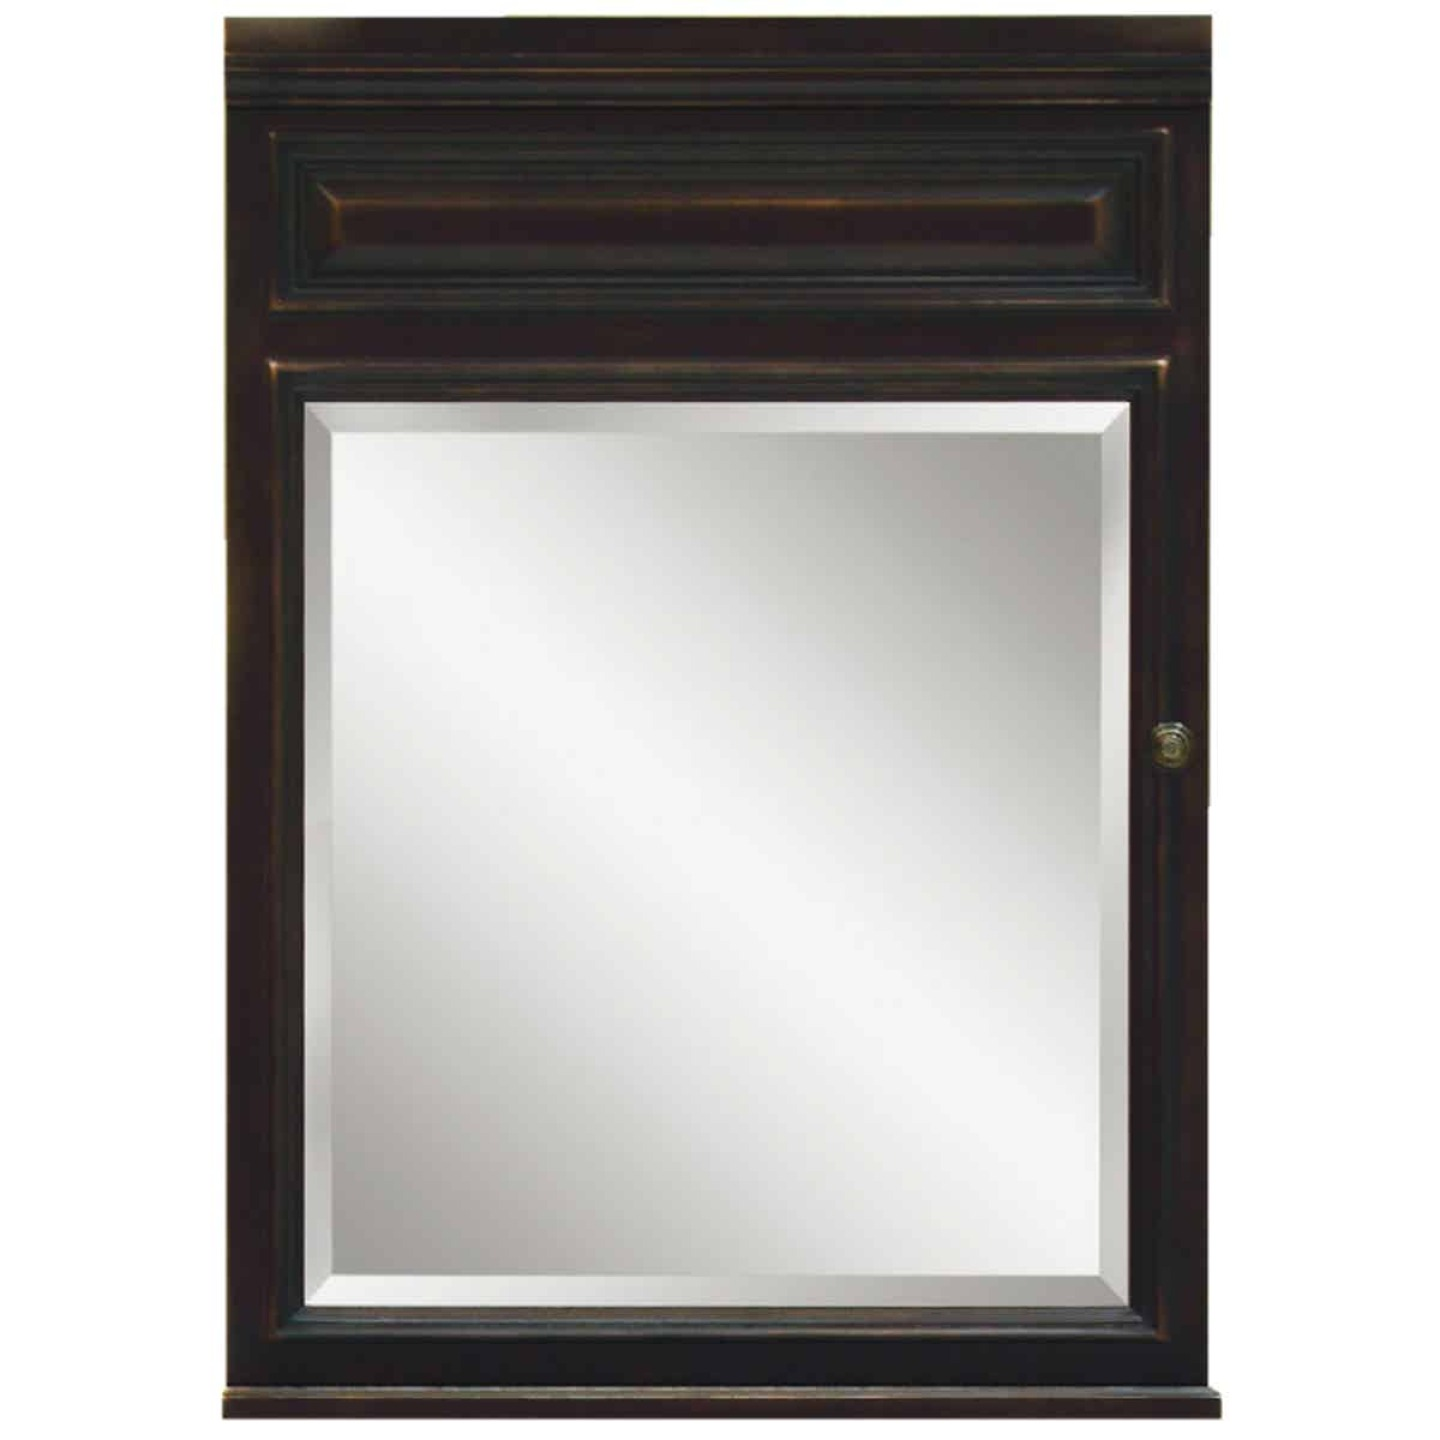 Sunny Wood Barton Hill Black Onyx 26 In. W x 35 In. H x 6-1/4 In. D Single Mirror Surface Mount Medicine Cabinet Image 1